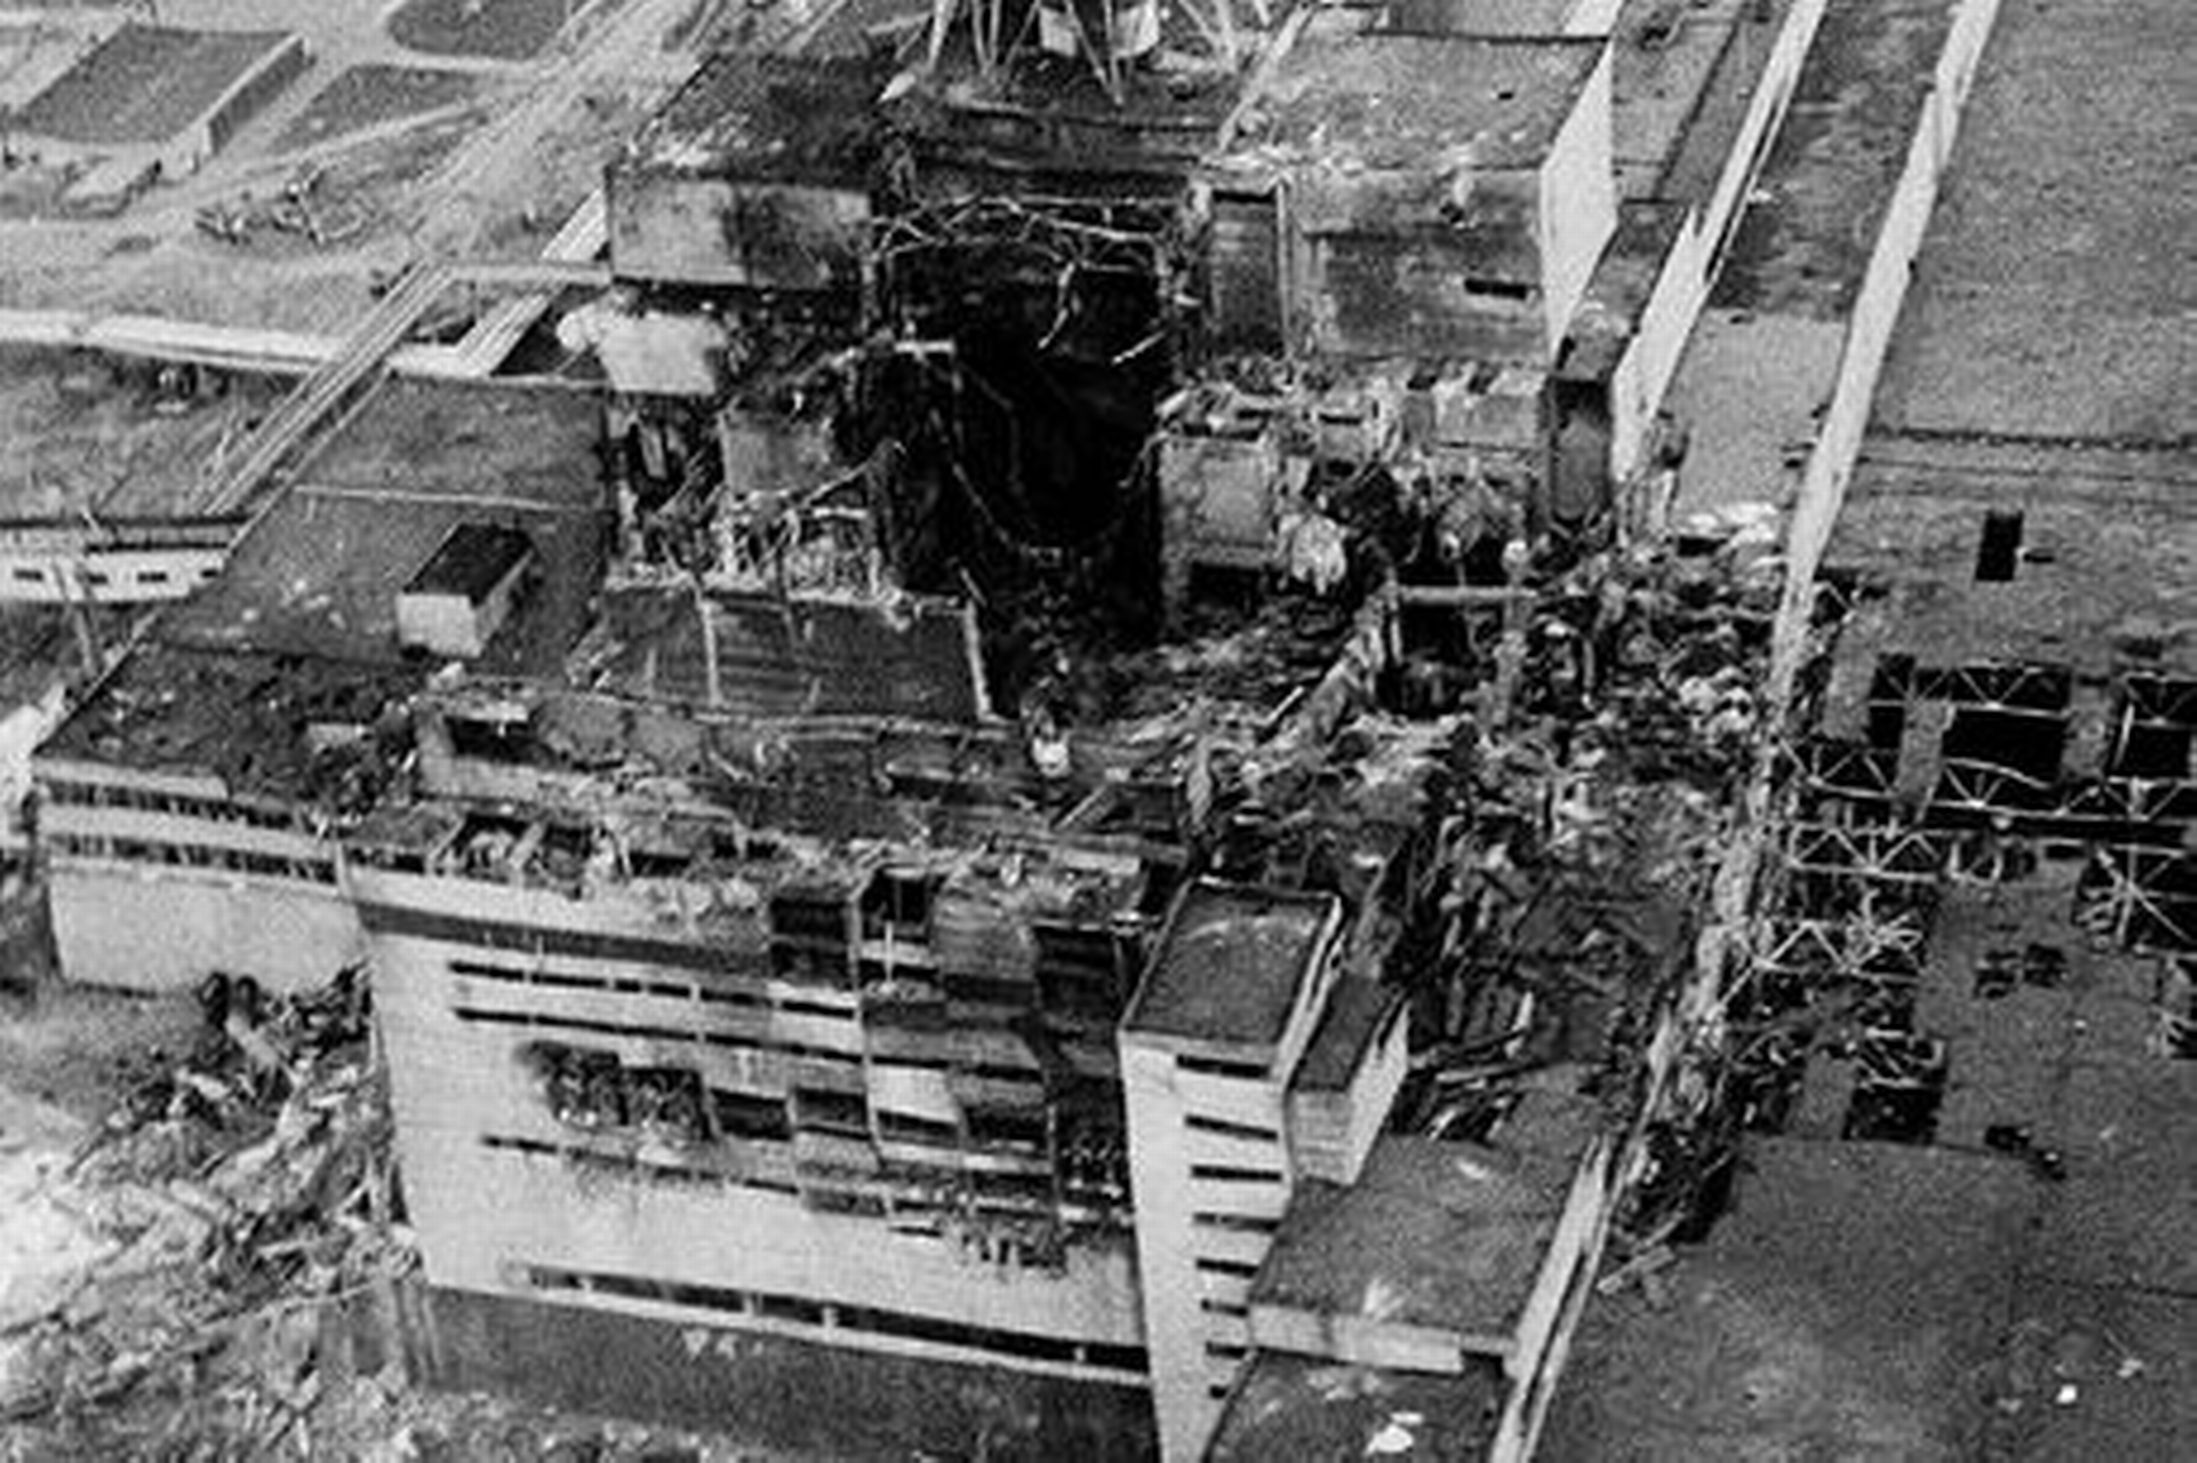 The Chernobyl nuclear reactor after the disaster. Reactor 4